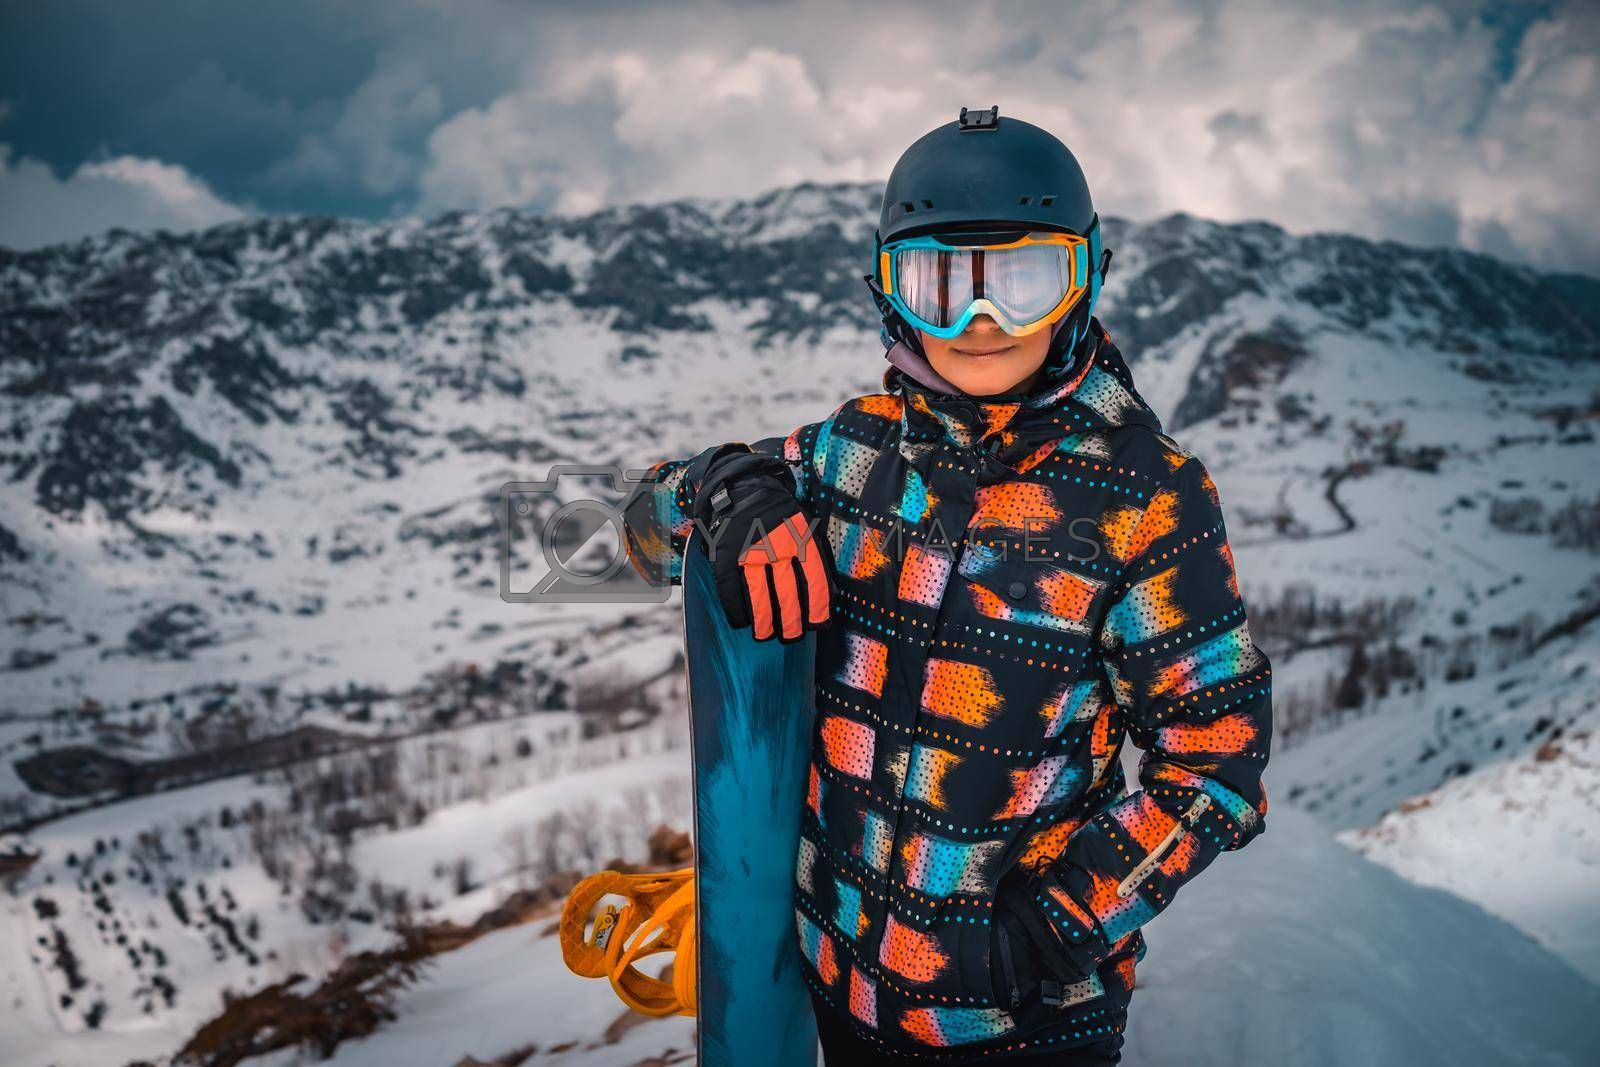 Snowboarder Preparing to Descend from the Mountain. Portrait of Happy Active Girl Enjoying Beautiful Winter Ski Resort